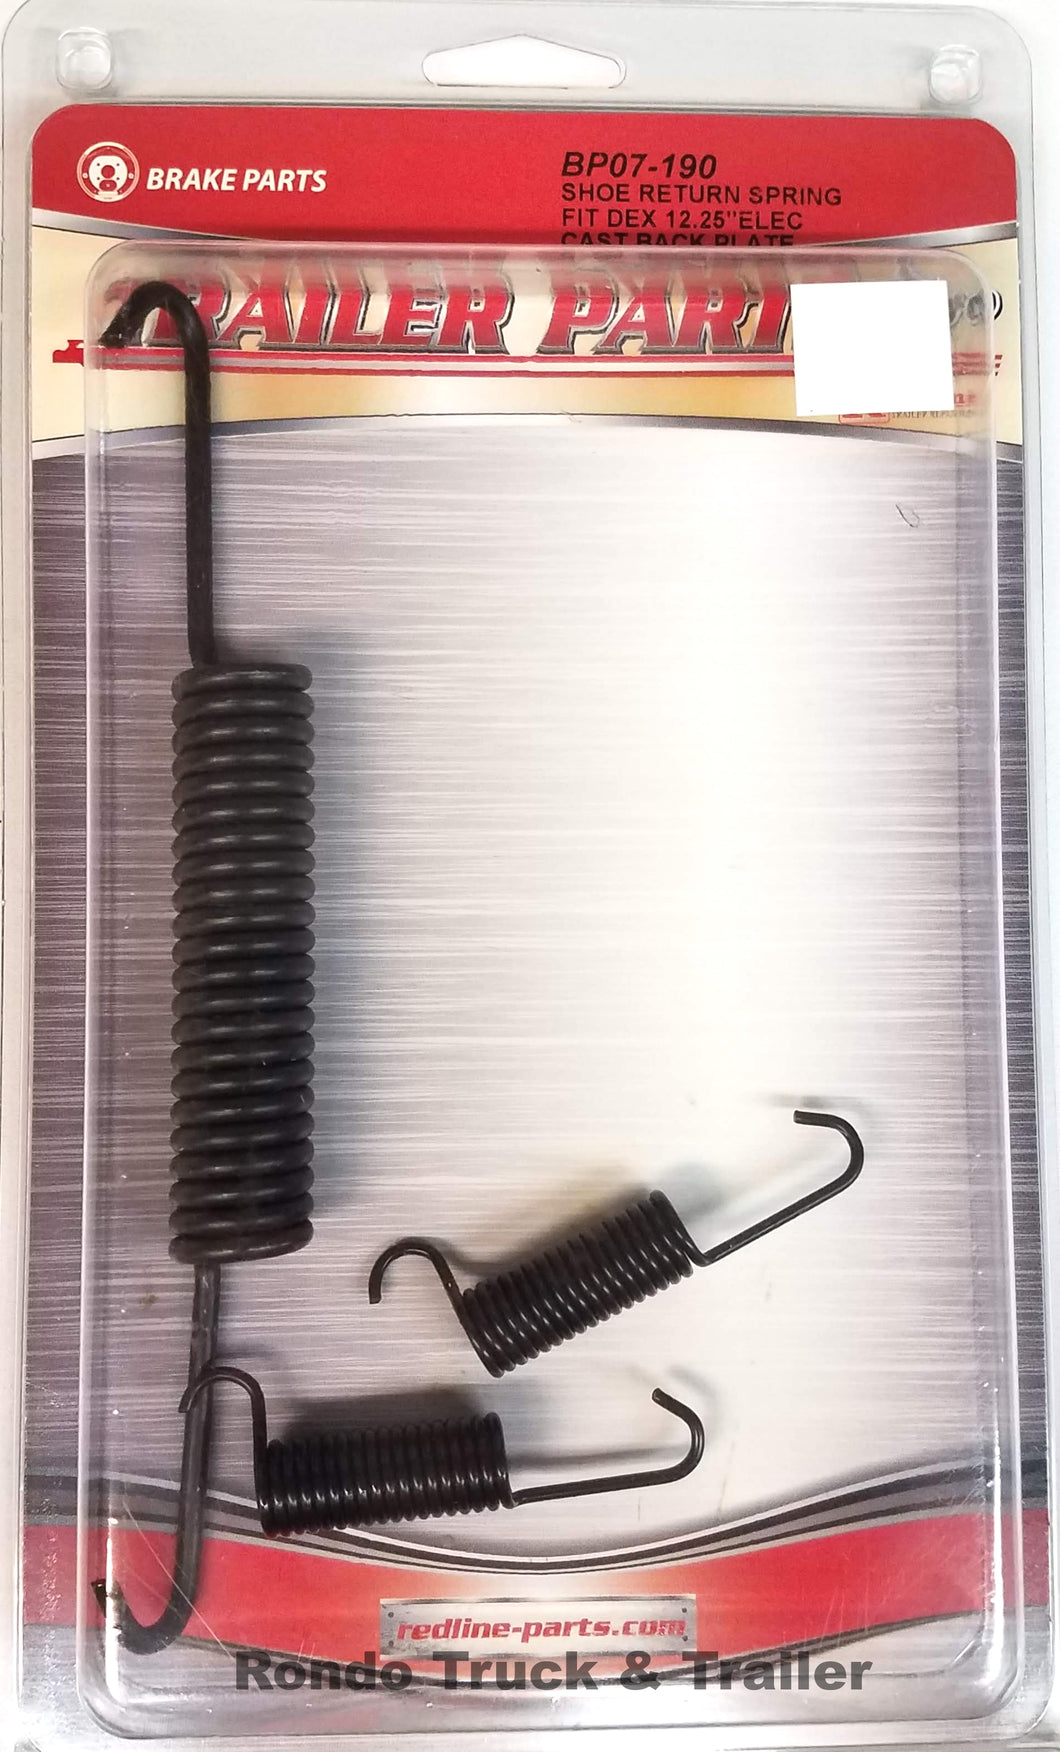 Redline Trailer Parts Brake Return Spring Kit for Dexter 12.25